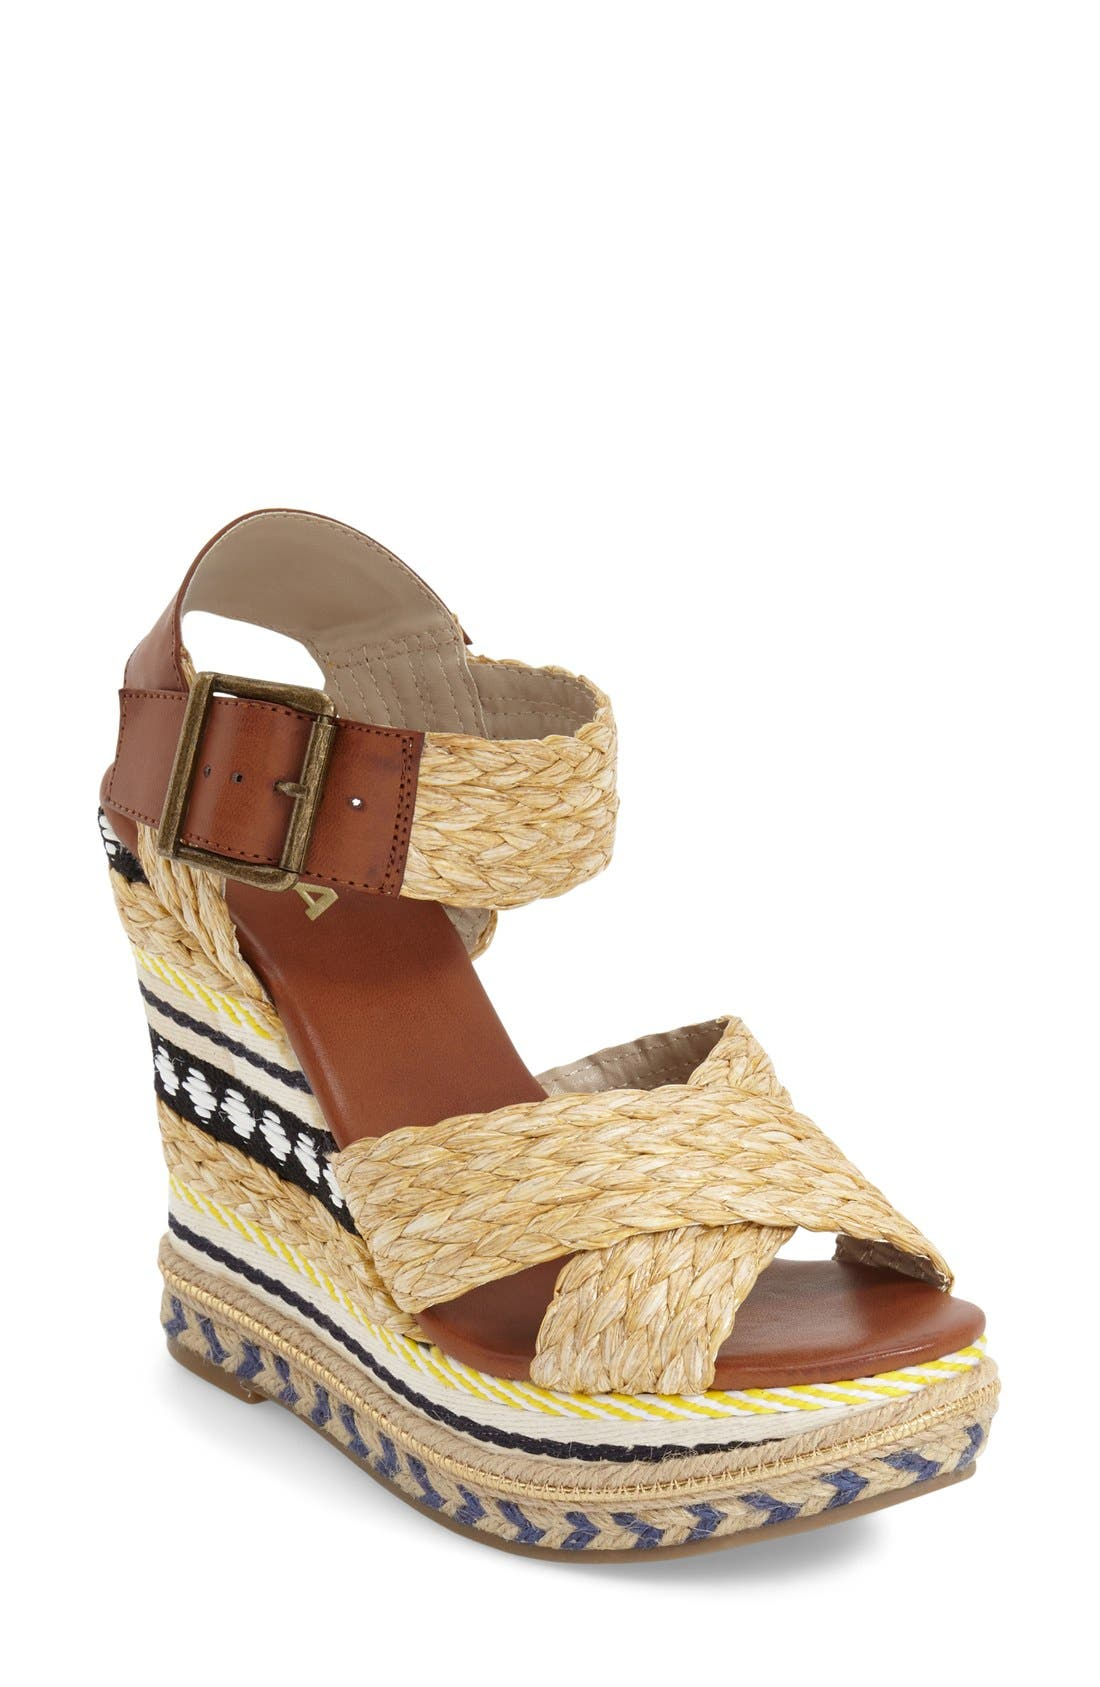 Alternate Image 1 Selected - MIA 'Fareena' Platform Wedge Sandal (Women)